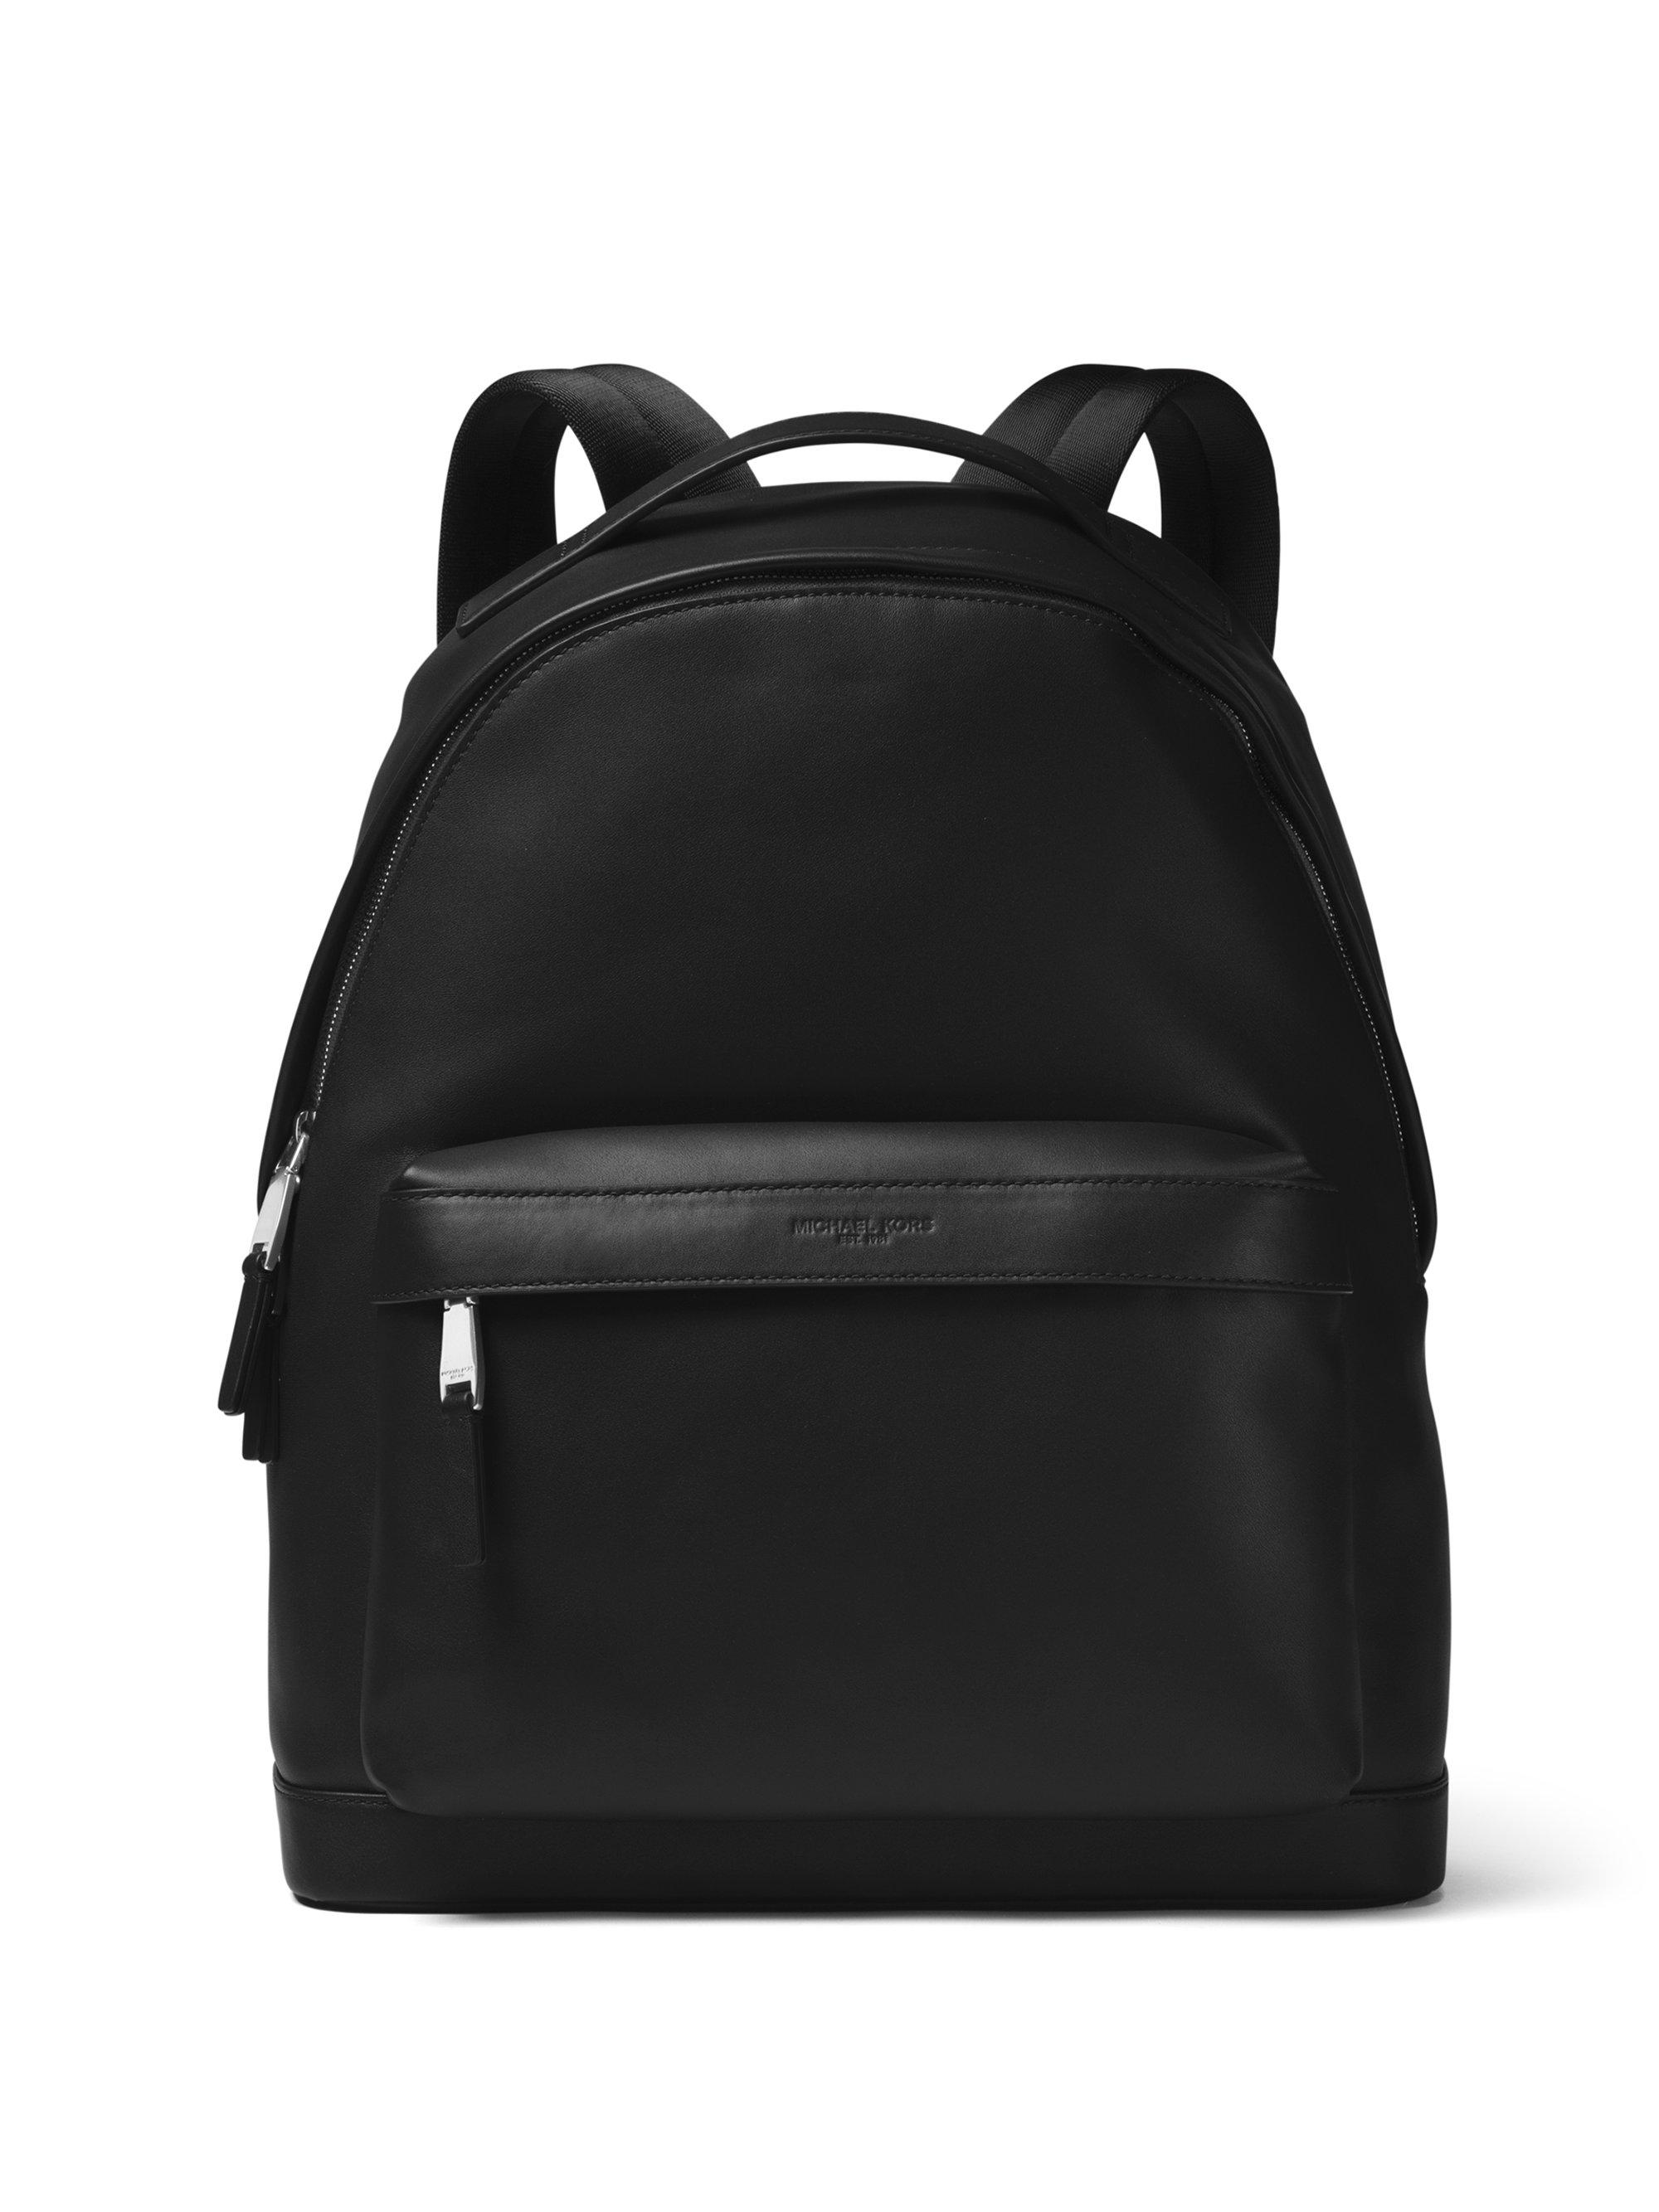 0a7d81c0b207 Michael Kors Men's Classic Leather Backpack in Black for Men - Lyst